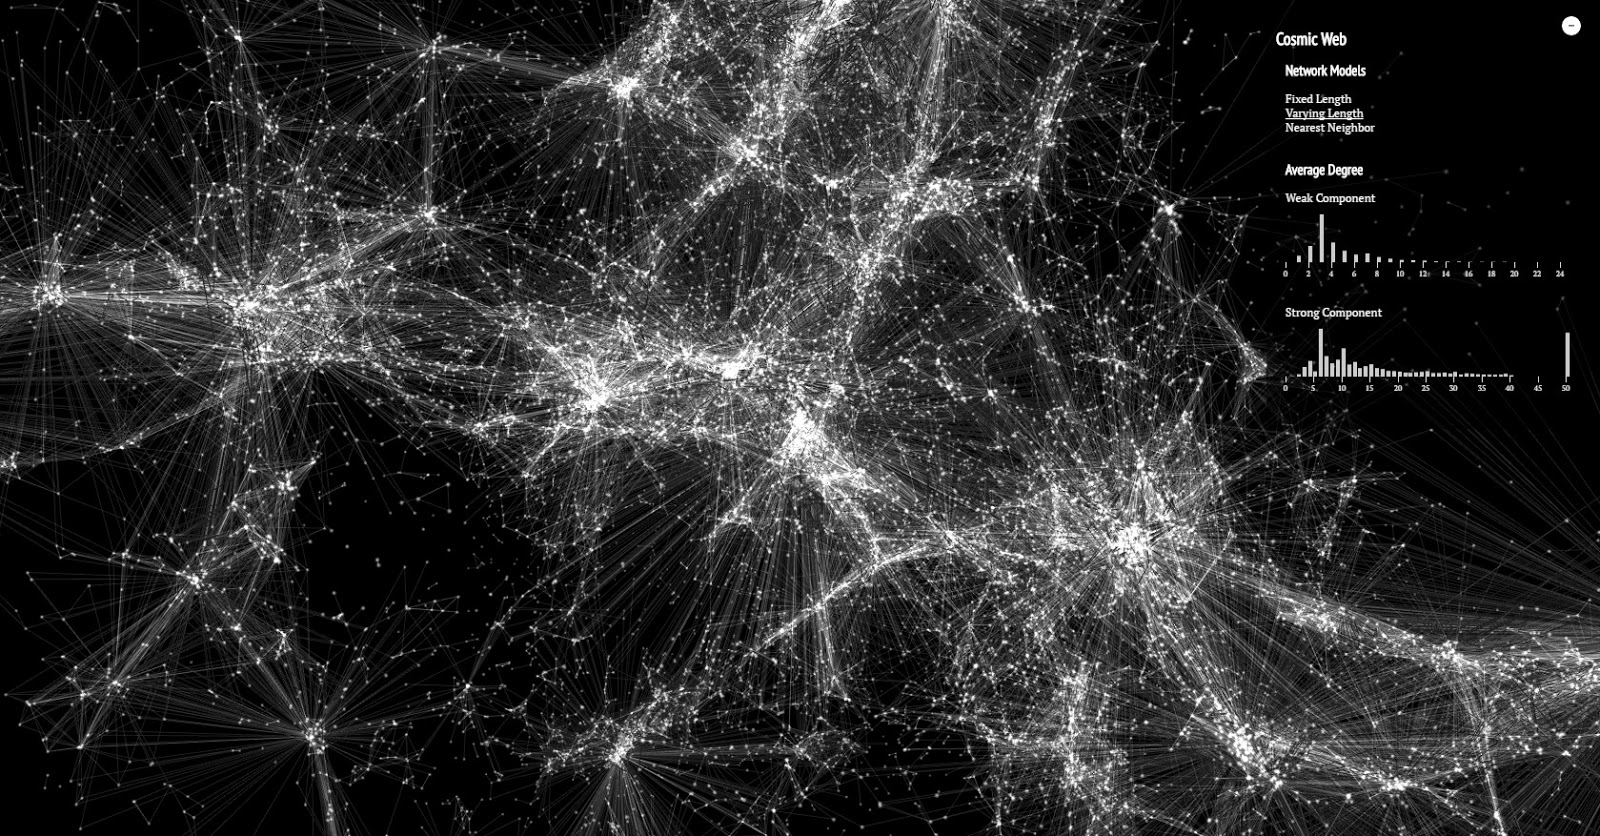 Cosmic Web Visualization